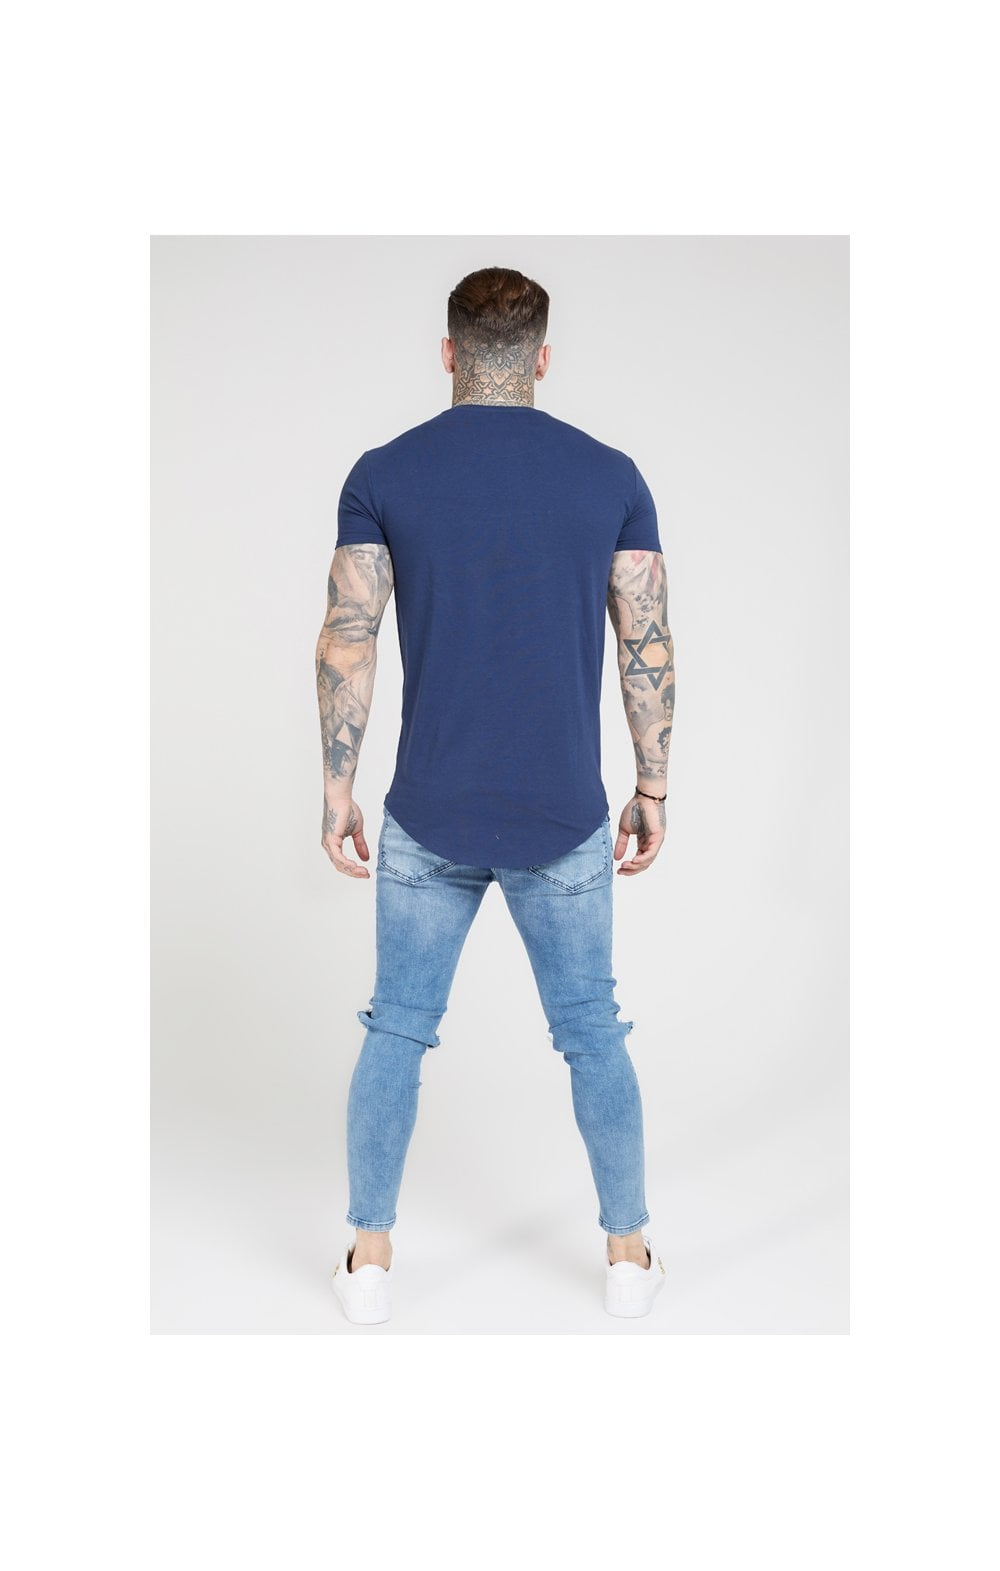 SikSilk S/S Core Gym Tee – Navy (4)